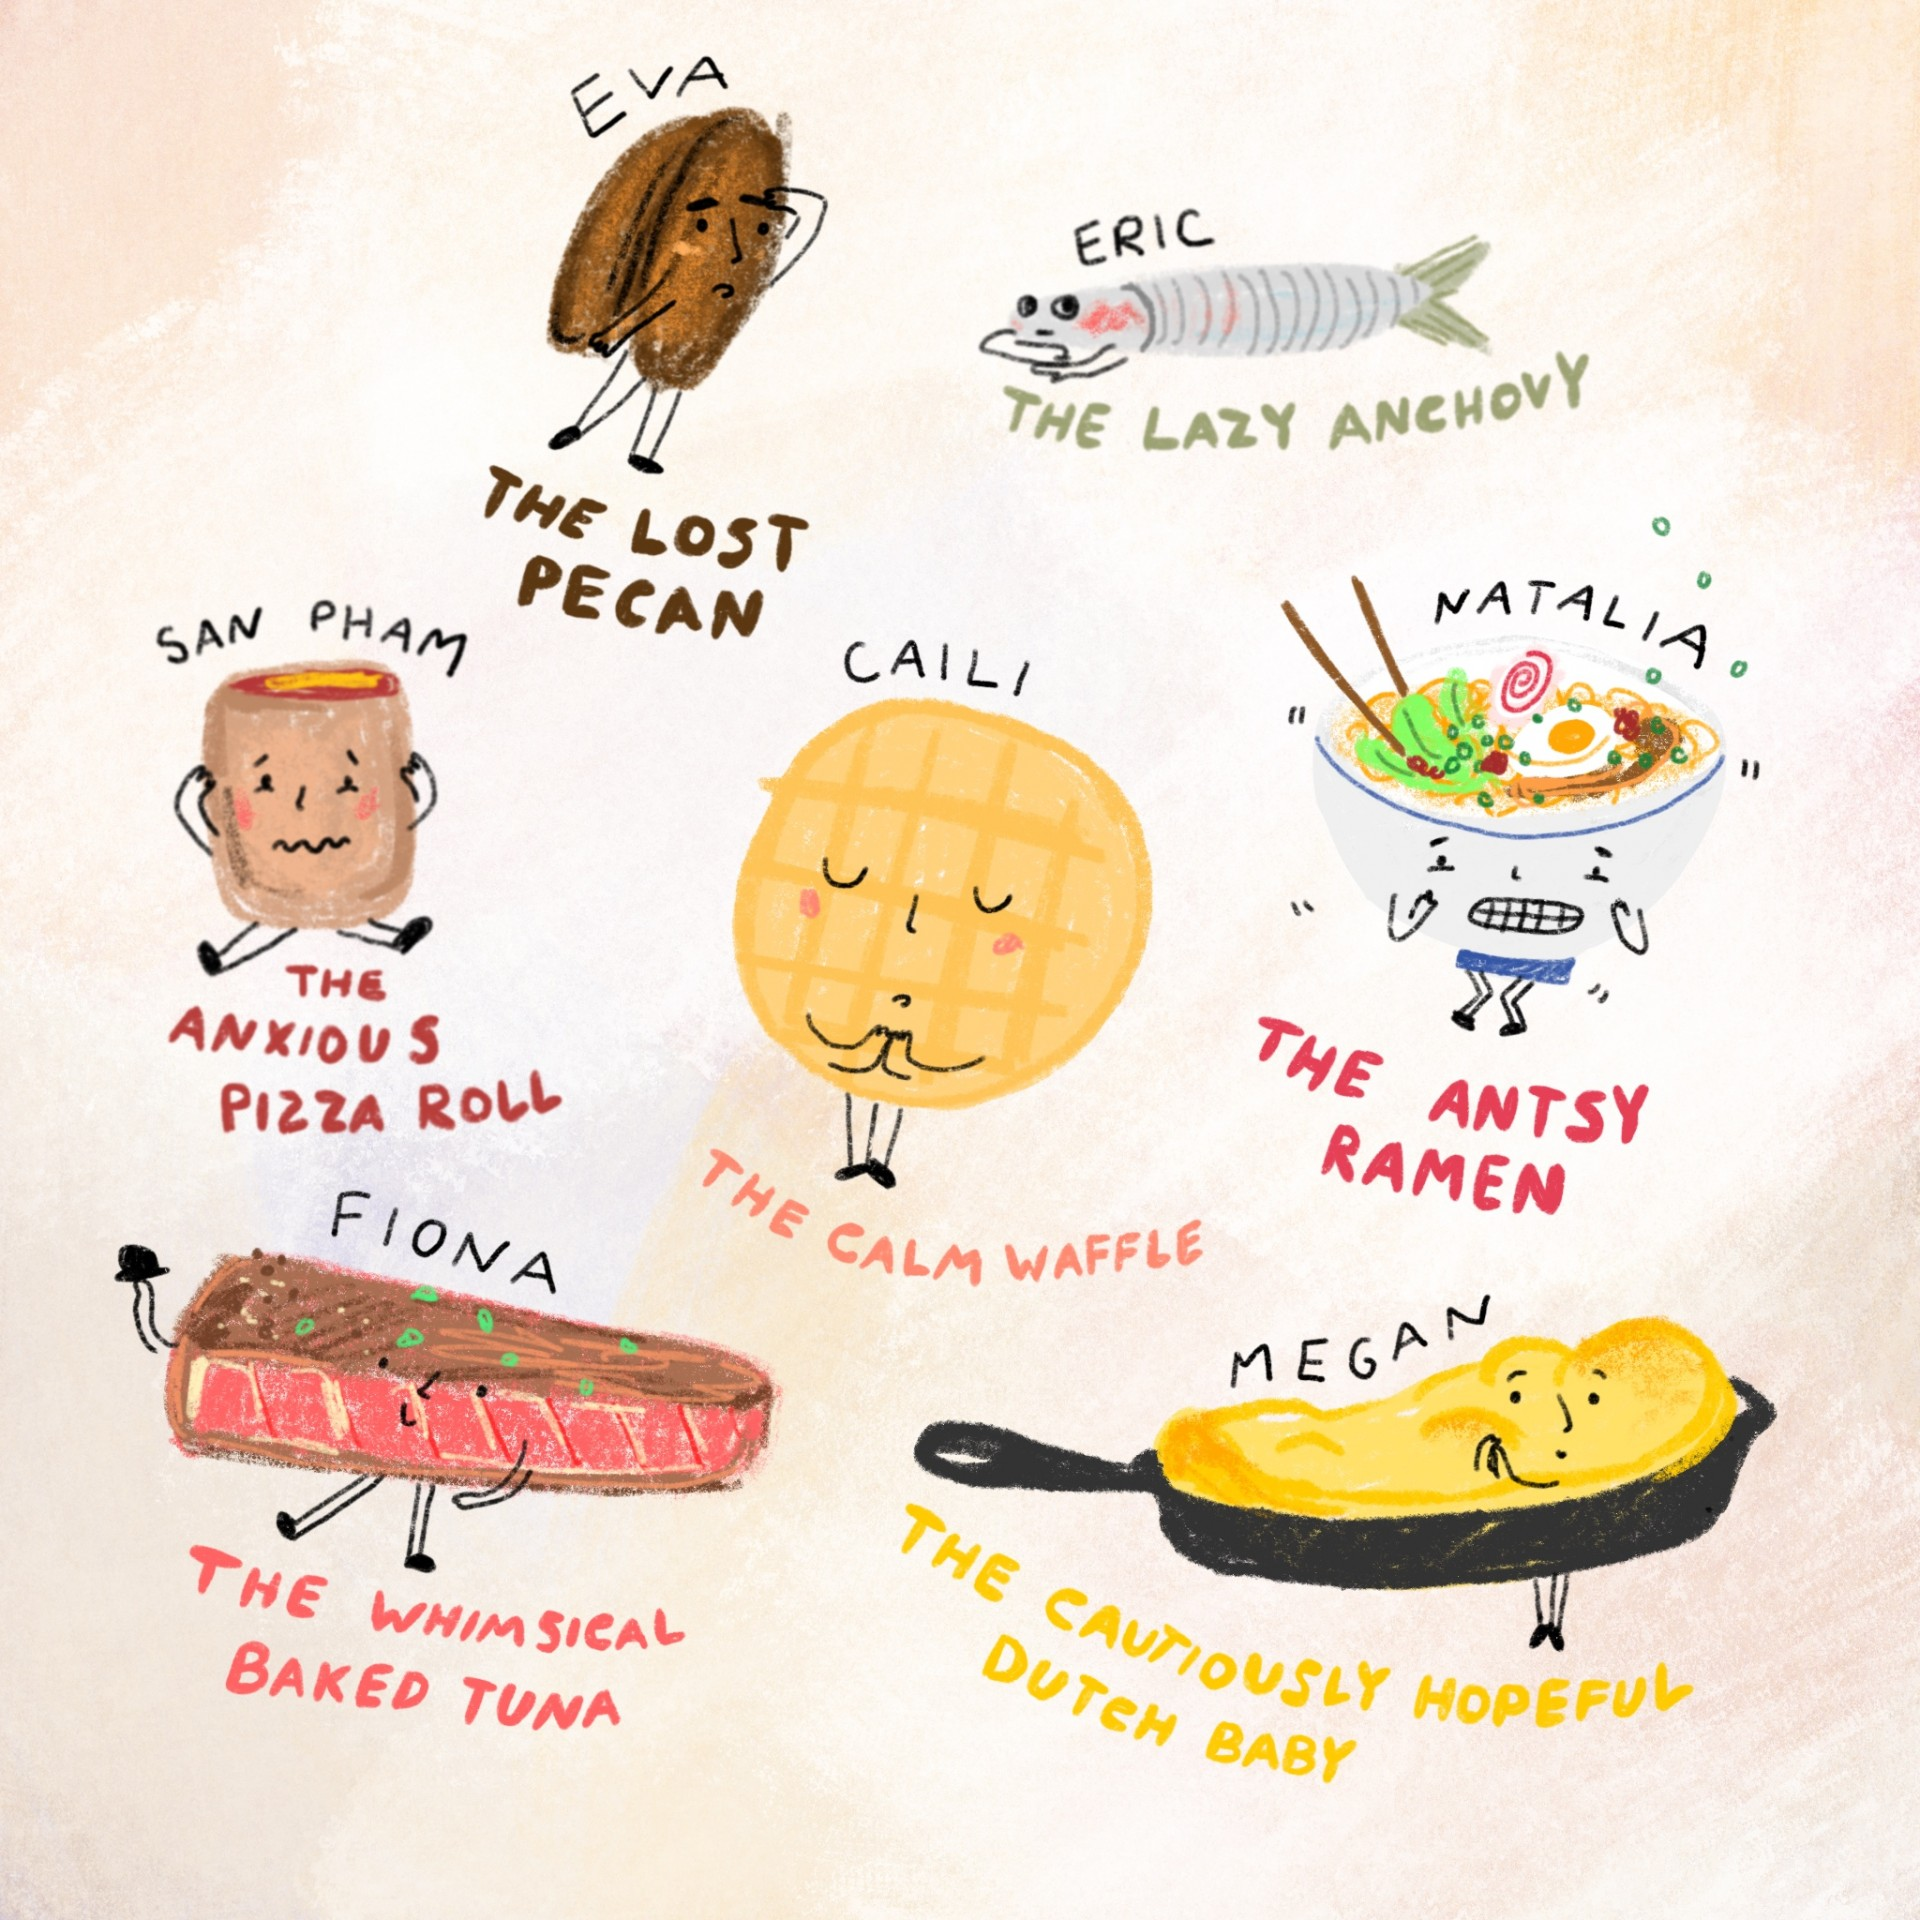 An assortment of drawings of emotional foods. Each drawing has a name and a description written underneath. Tan background and illustrations are drawn in color